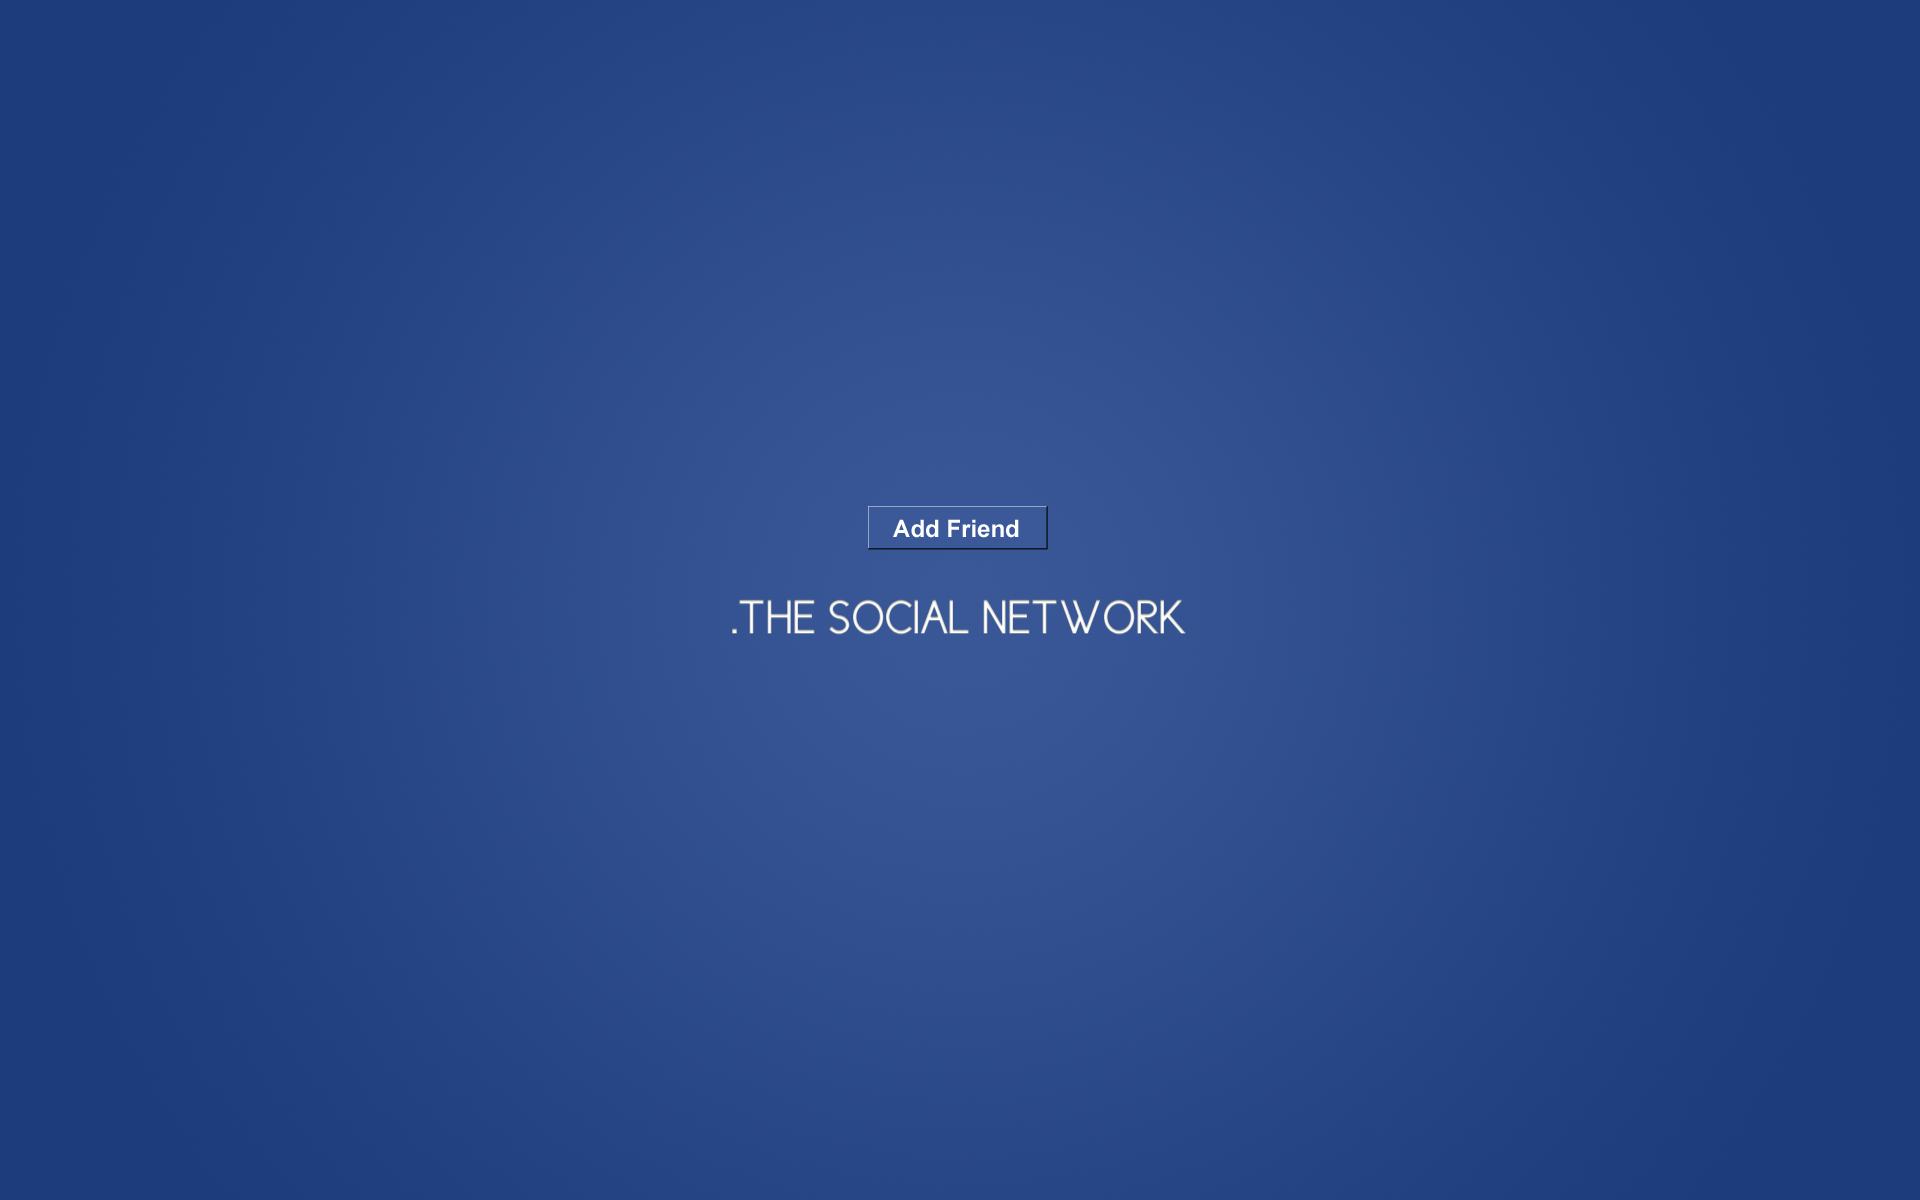 21 Facebook Backgrounds Social Networking Pictures: 13 The Social Network HD Wallpapers